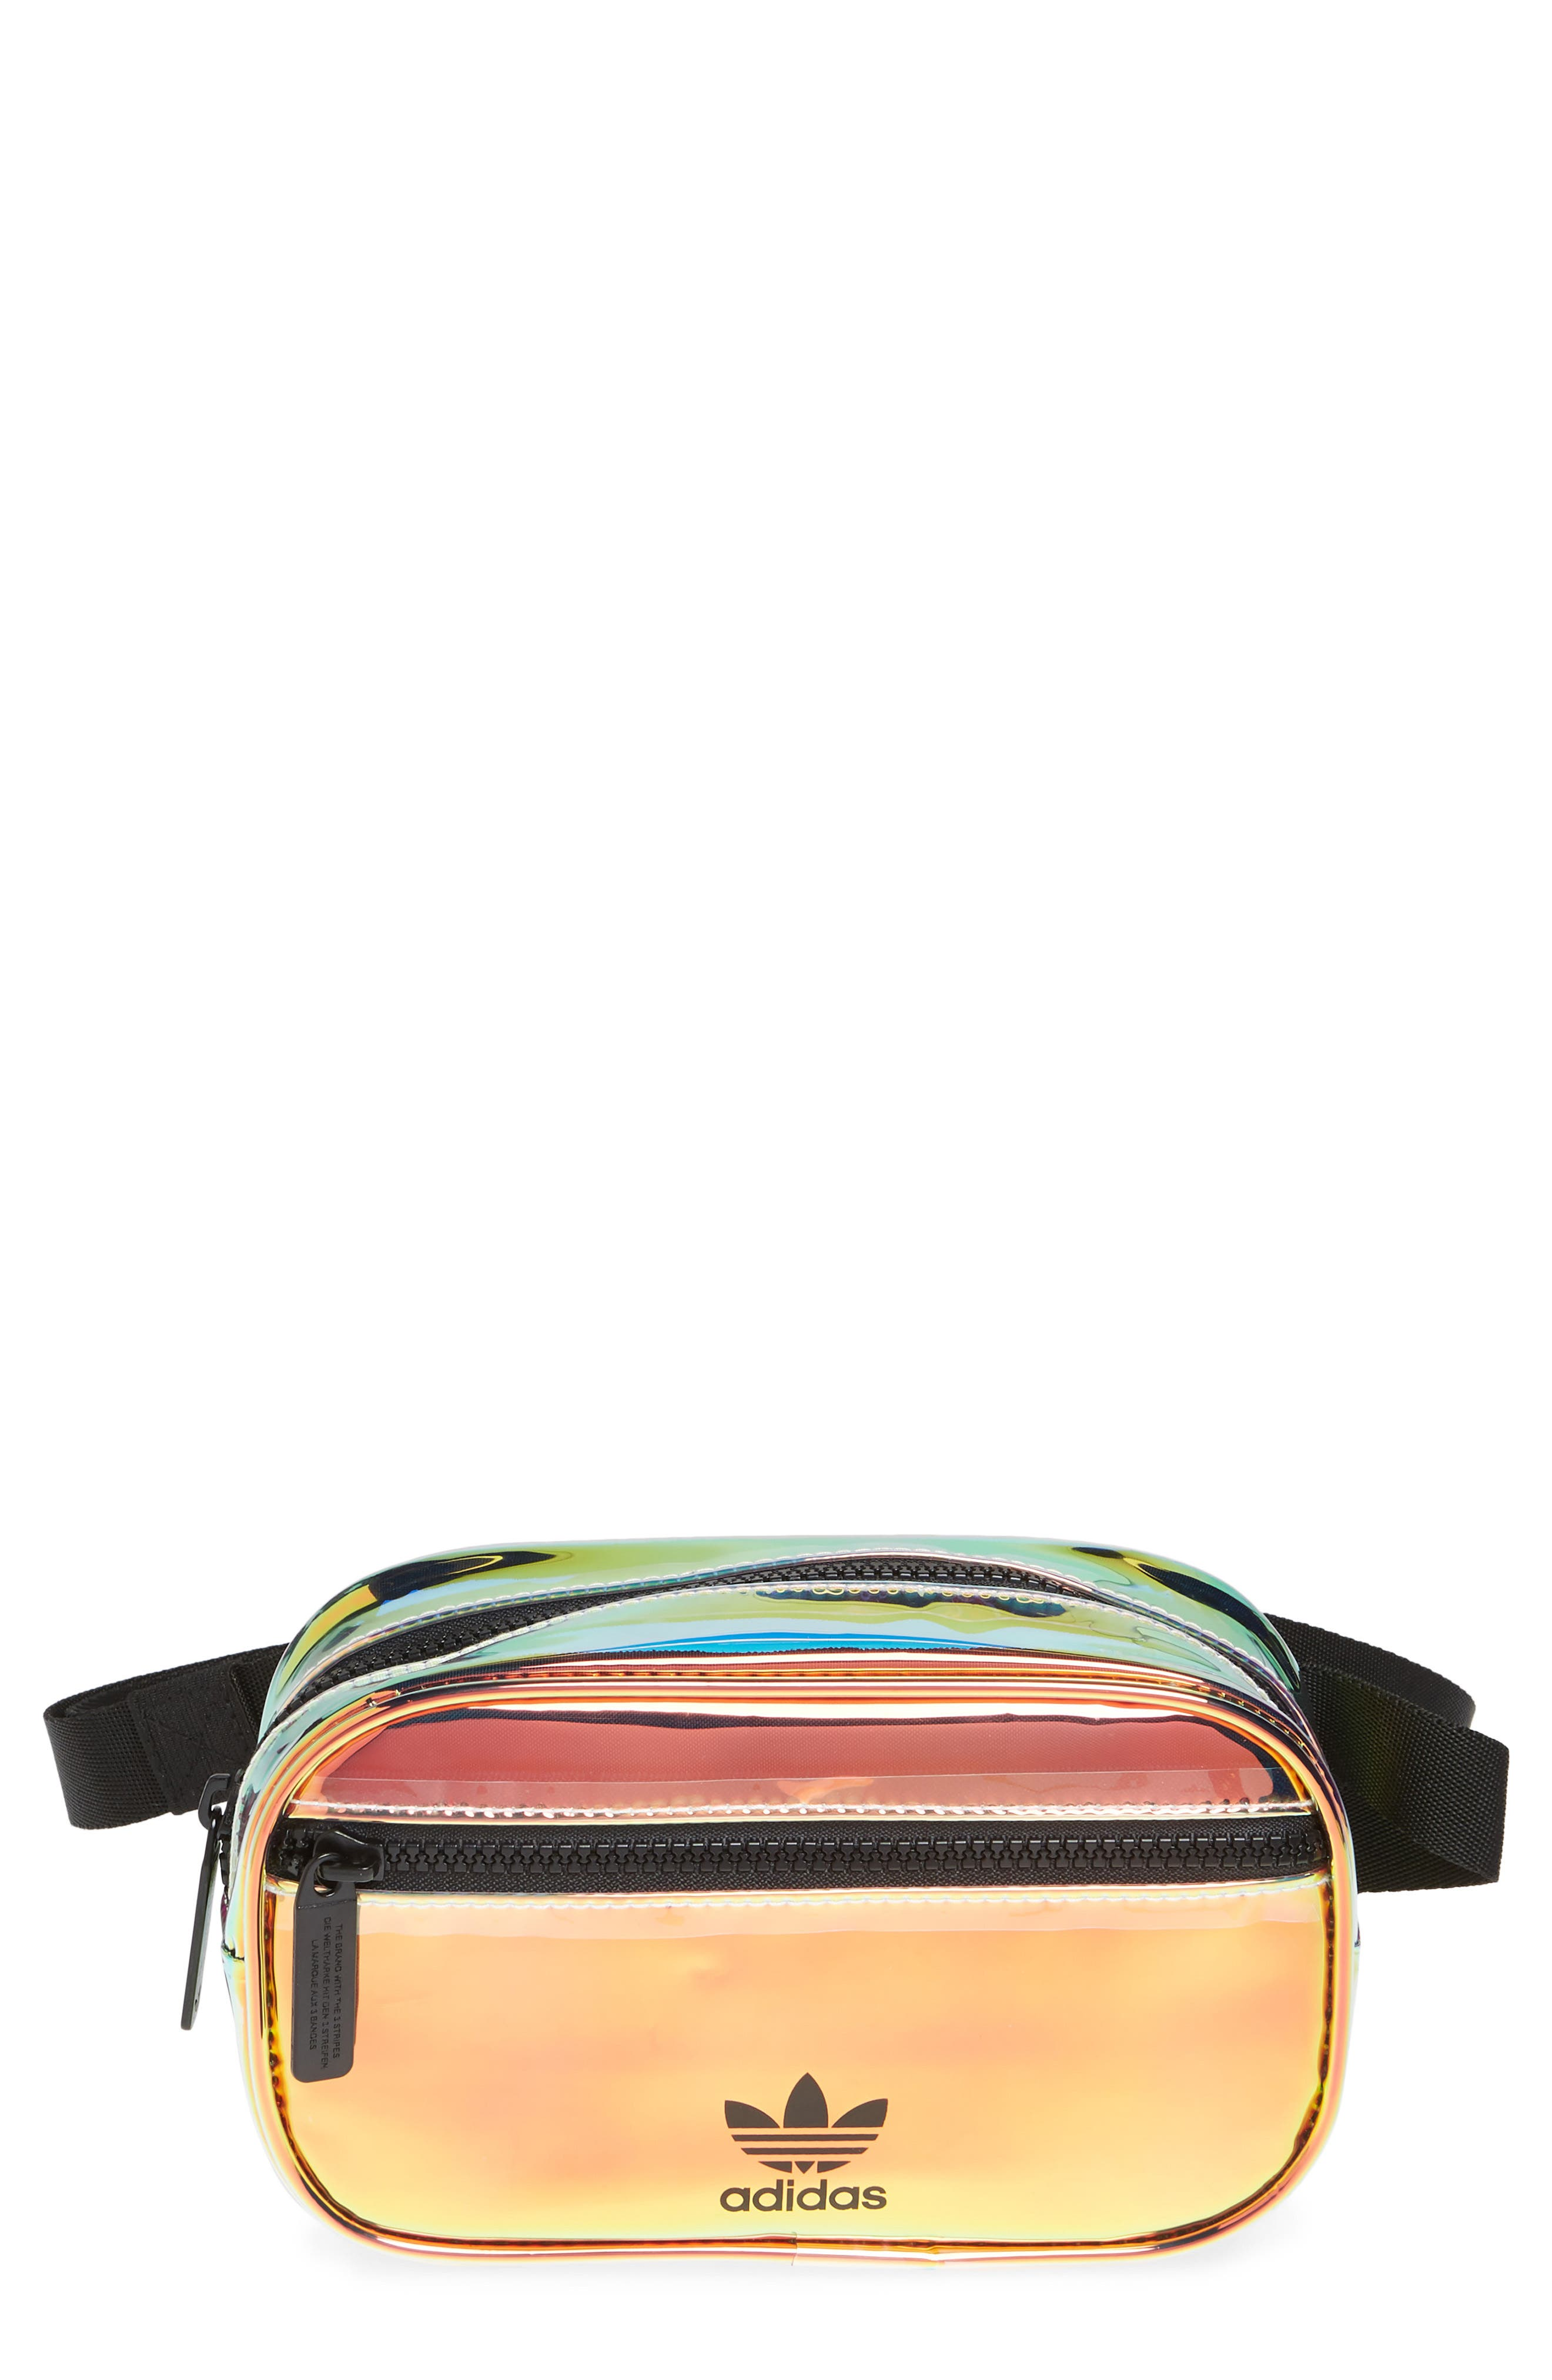 ADIDAS, Ori Holographic Clear Belt Bag, Main thumbnail 1, color, 100